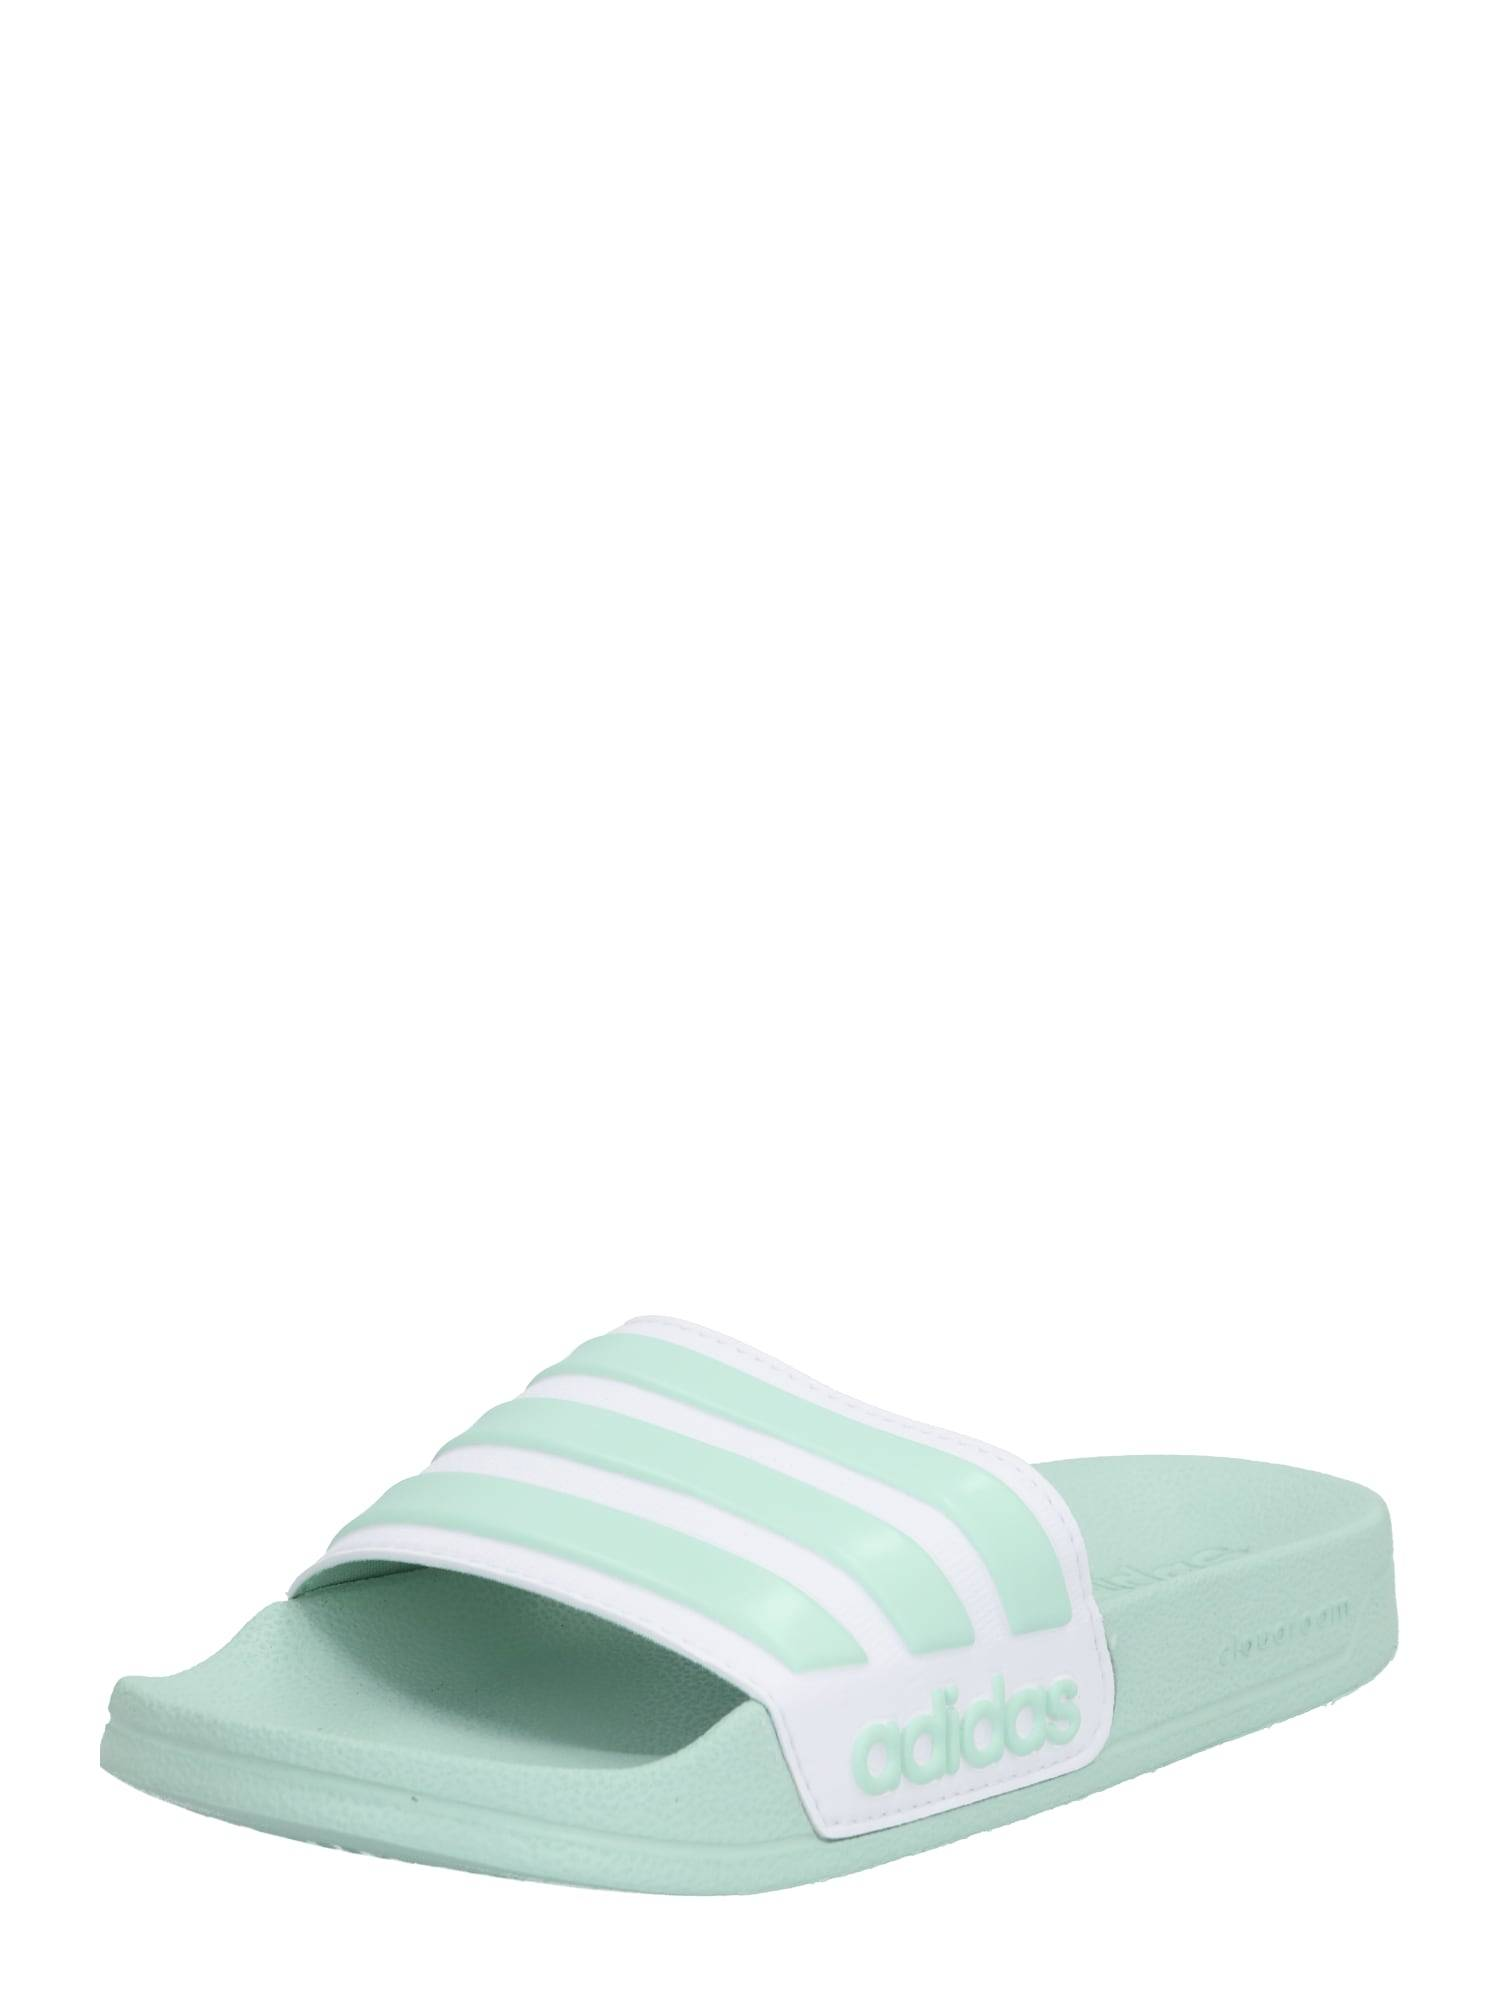 ADIDAS PERFORMANCE Claquettes / Tongs 'Adilette'  - Vert - Taille: 9 - female